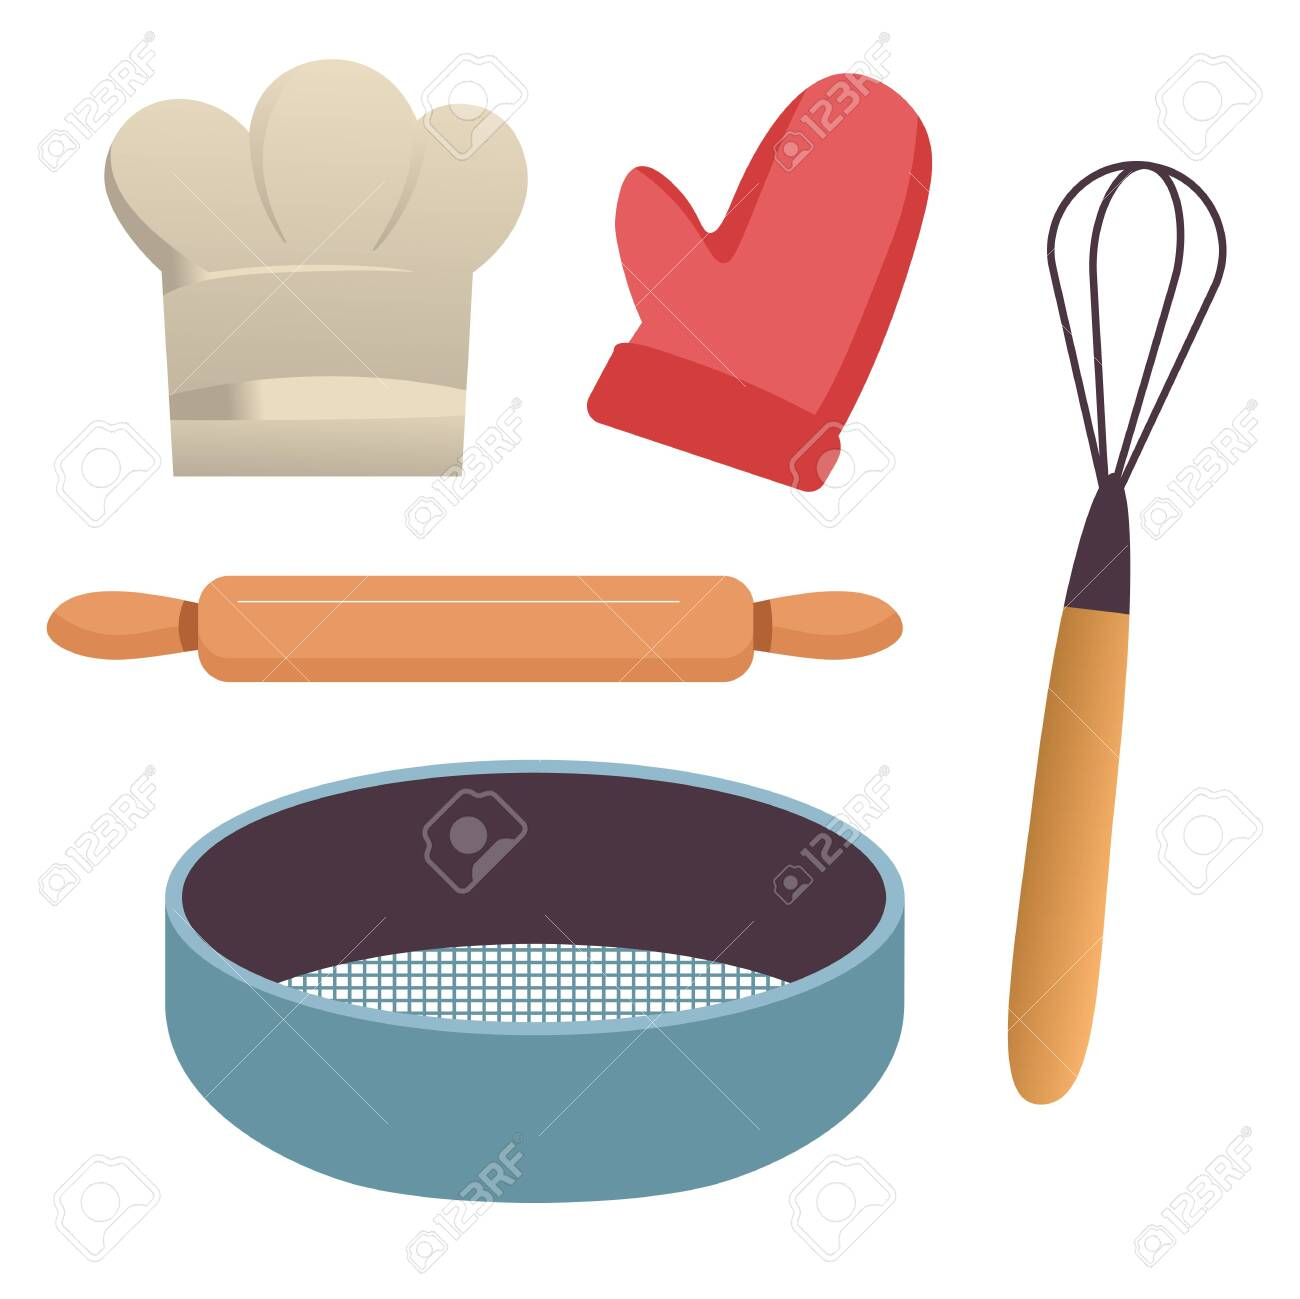 Baking tools, kitchen equipment, sieve and rolling pin, whisk and potholder - 141863328